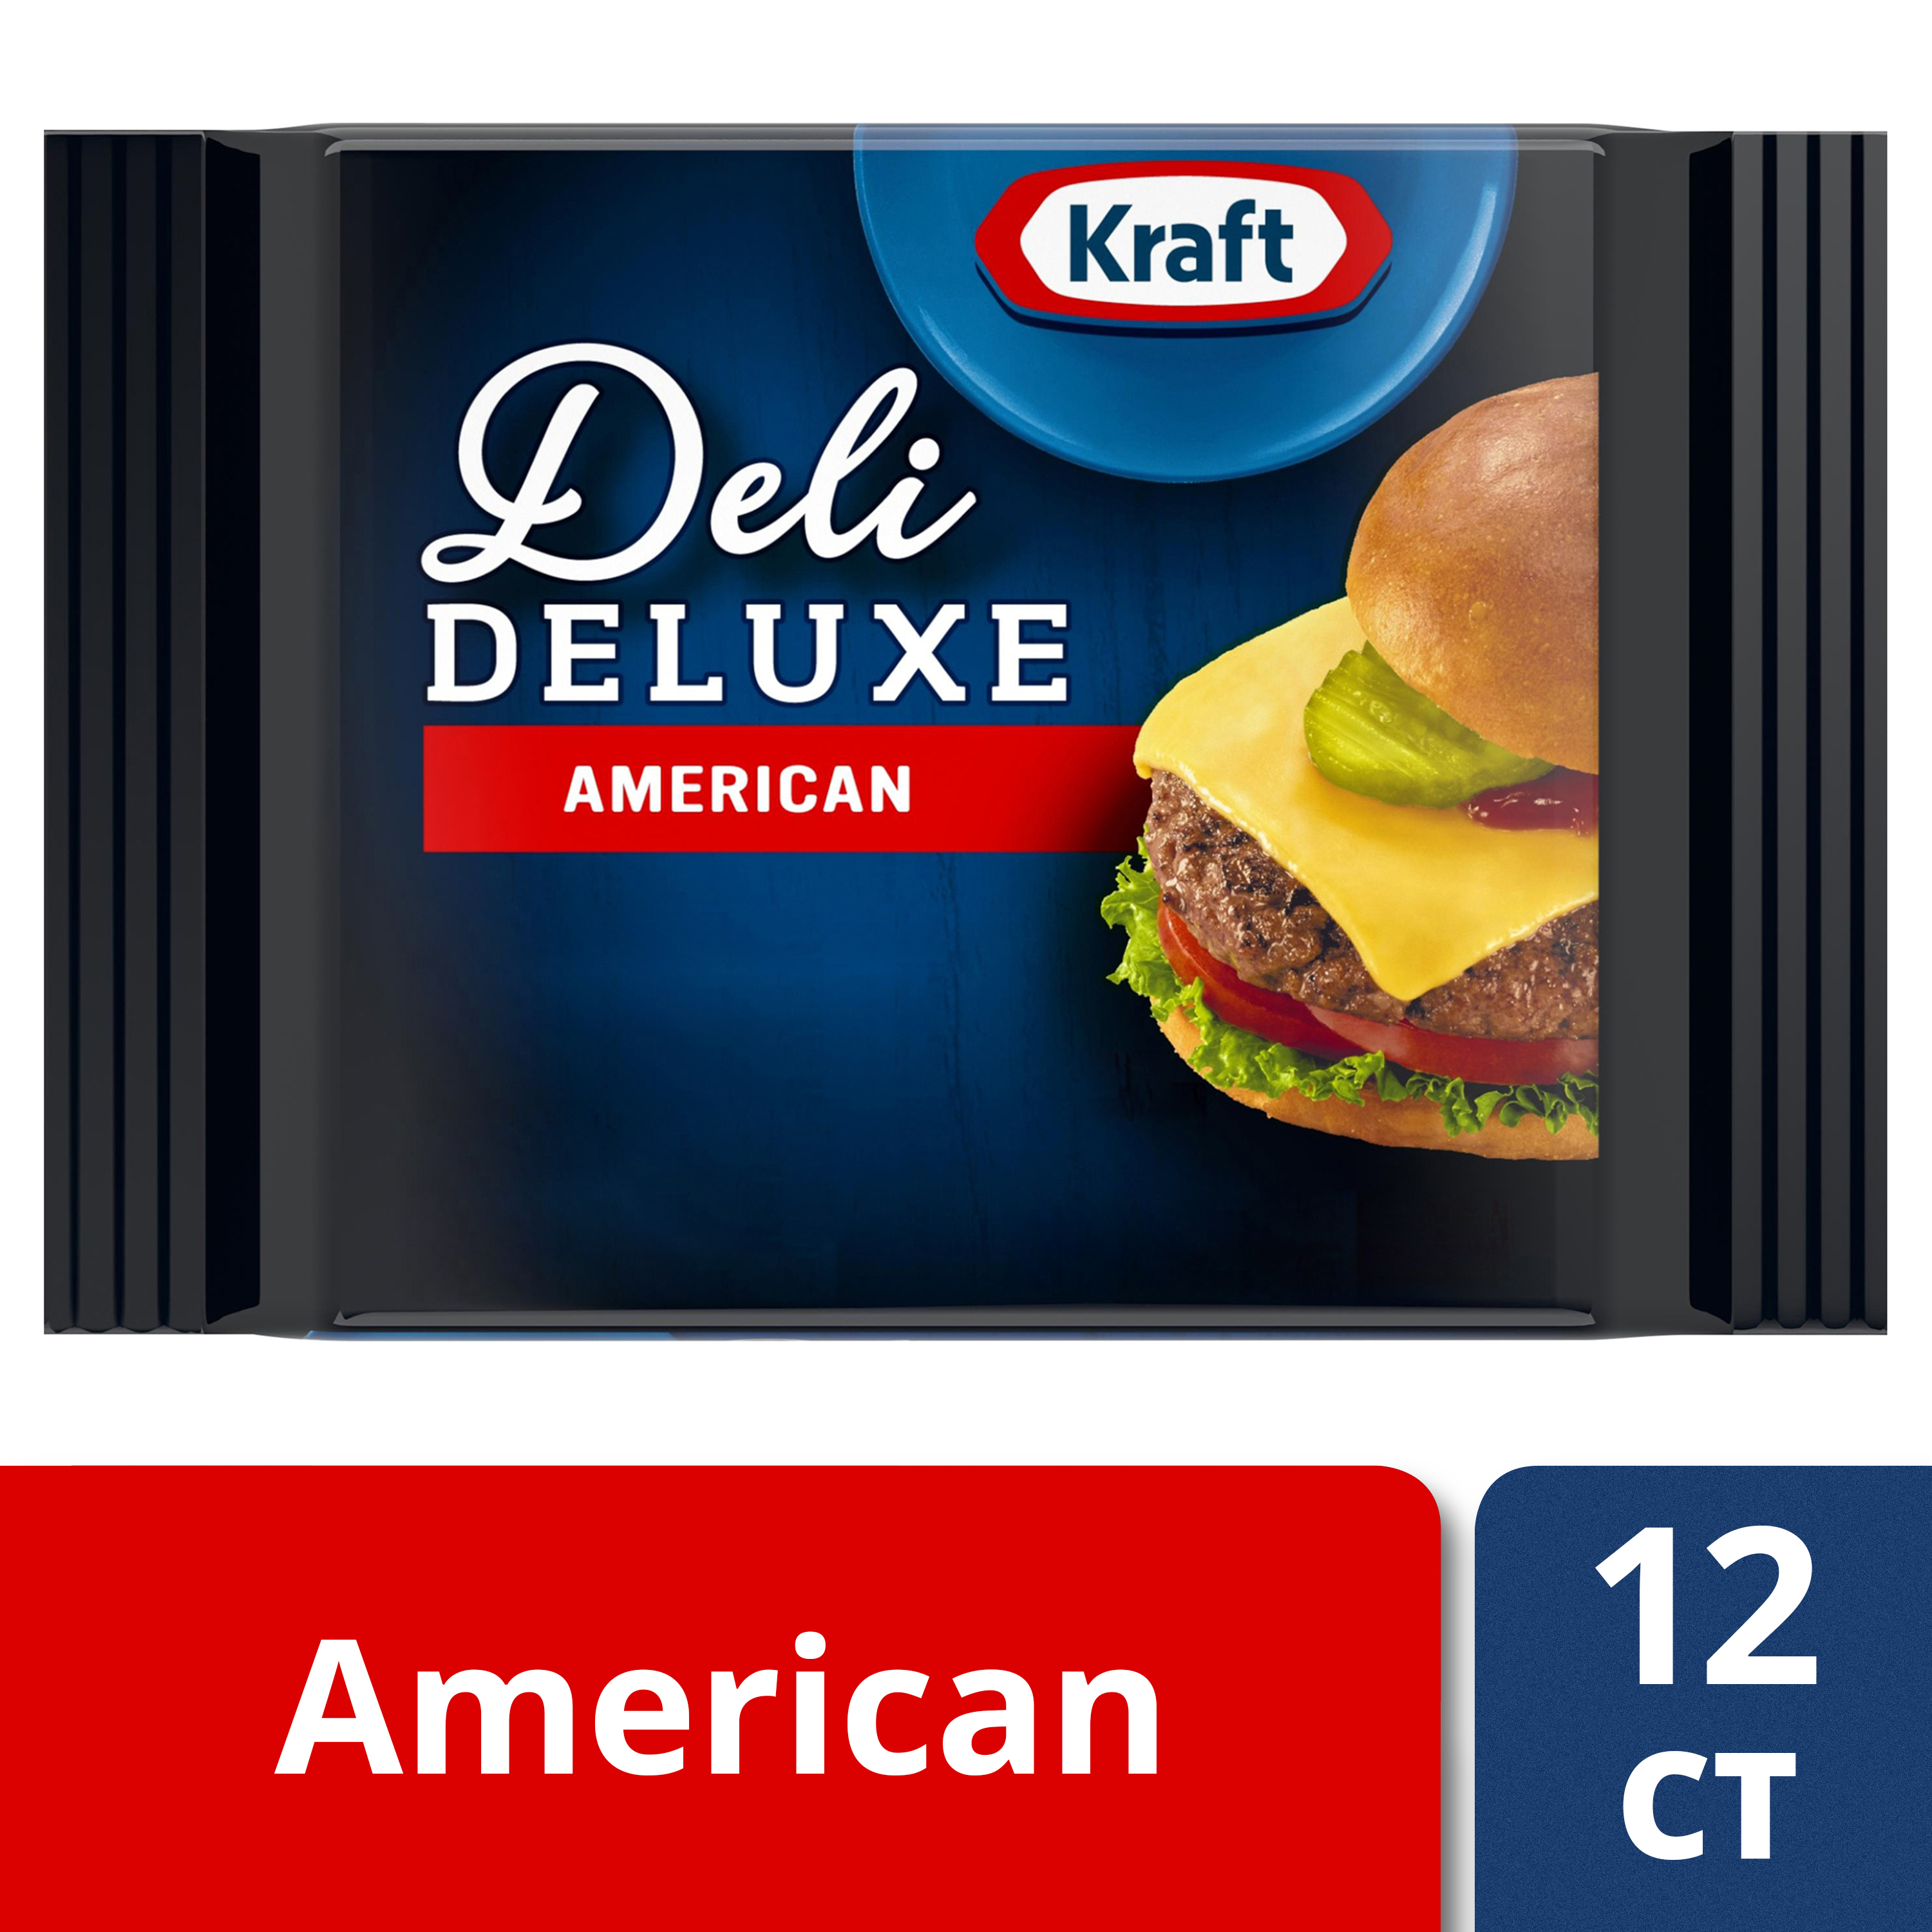 Kraft Deli Deluxe Cheese Slices, American Cheese, 12 ct - 8.0 oz Wrapper